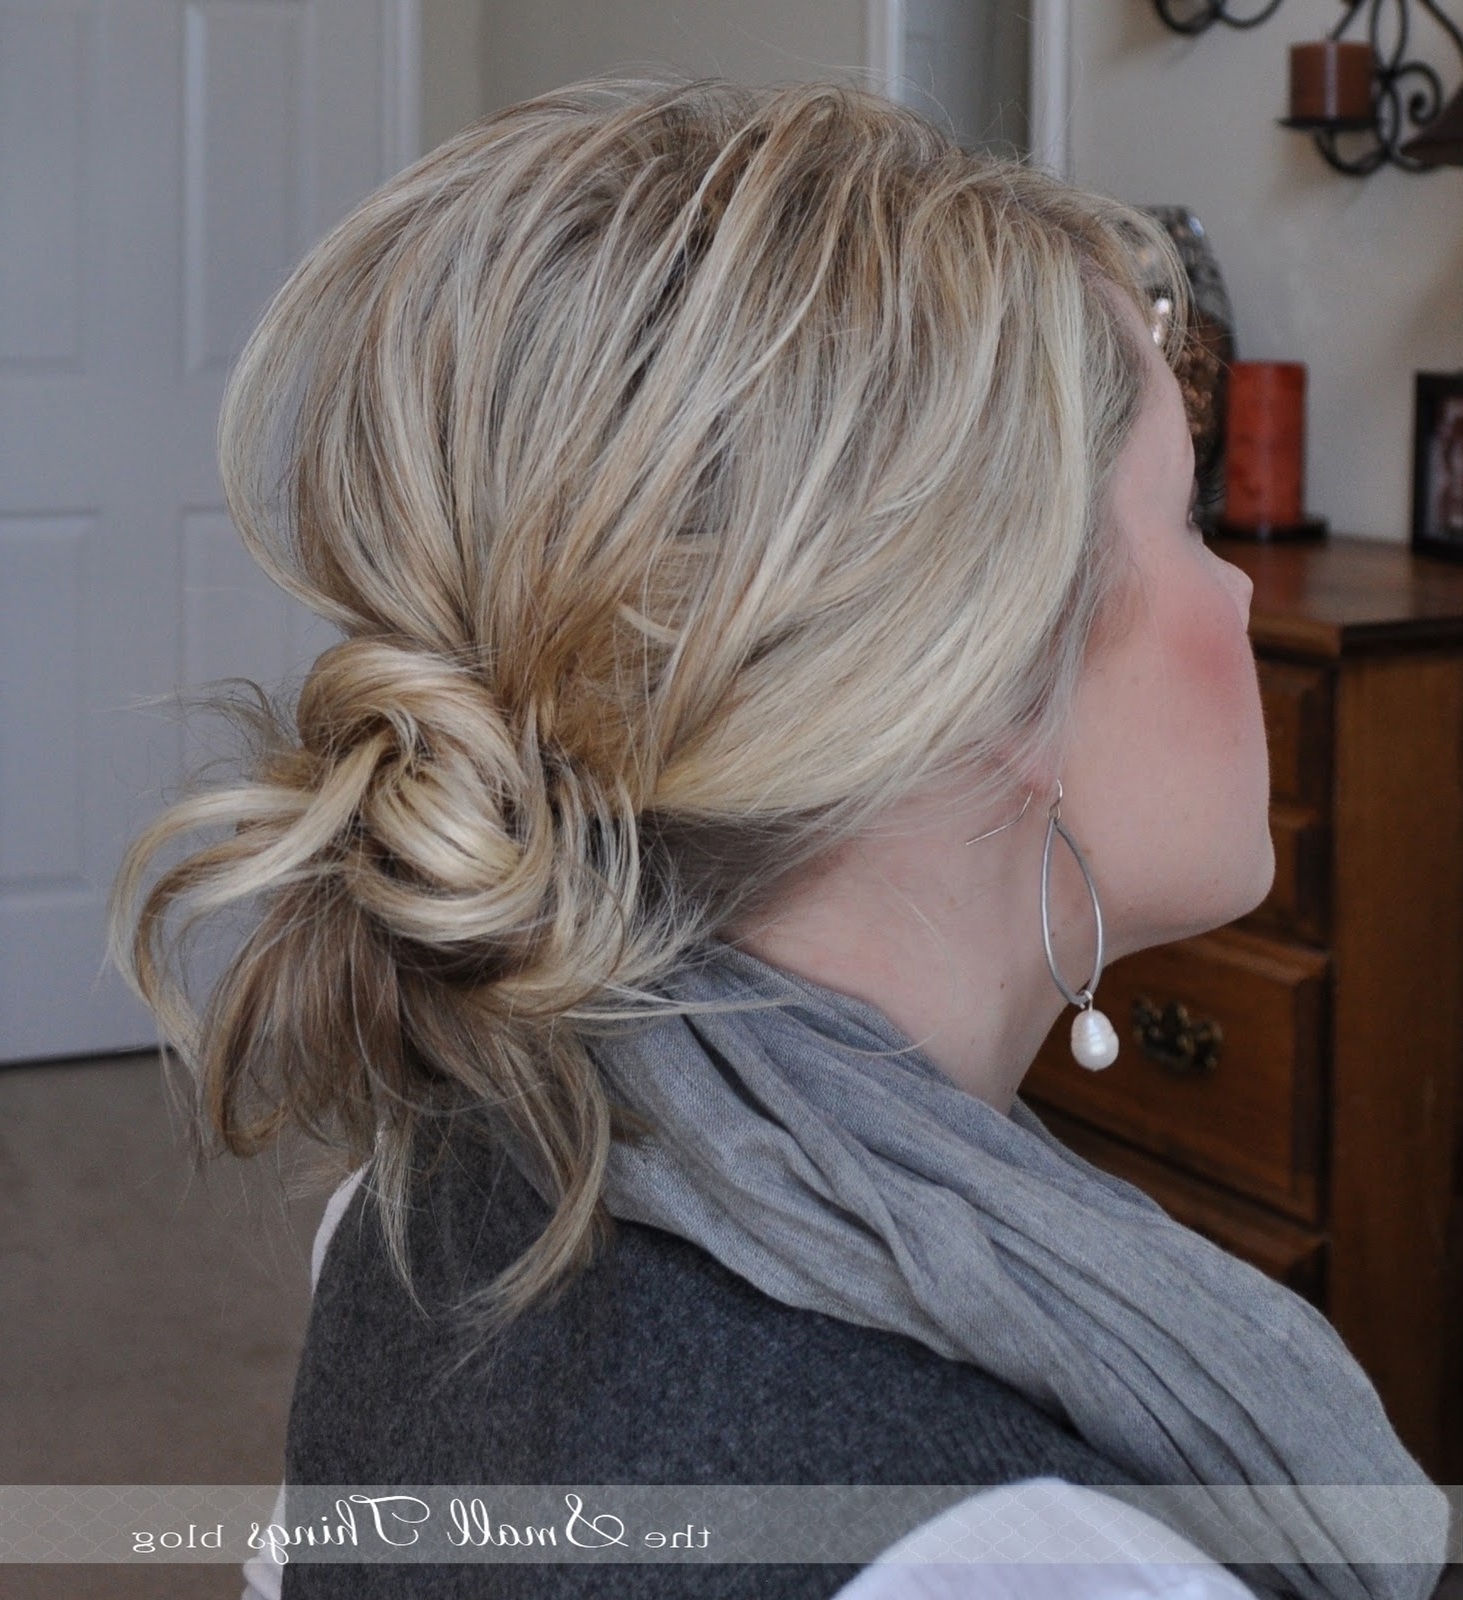 Widely Used Curled Up Messy Ponytail Hairstyles In Messy Ponytail/bun – The Small Things Blog (View 20 of 20)